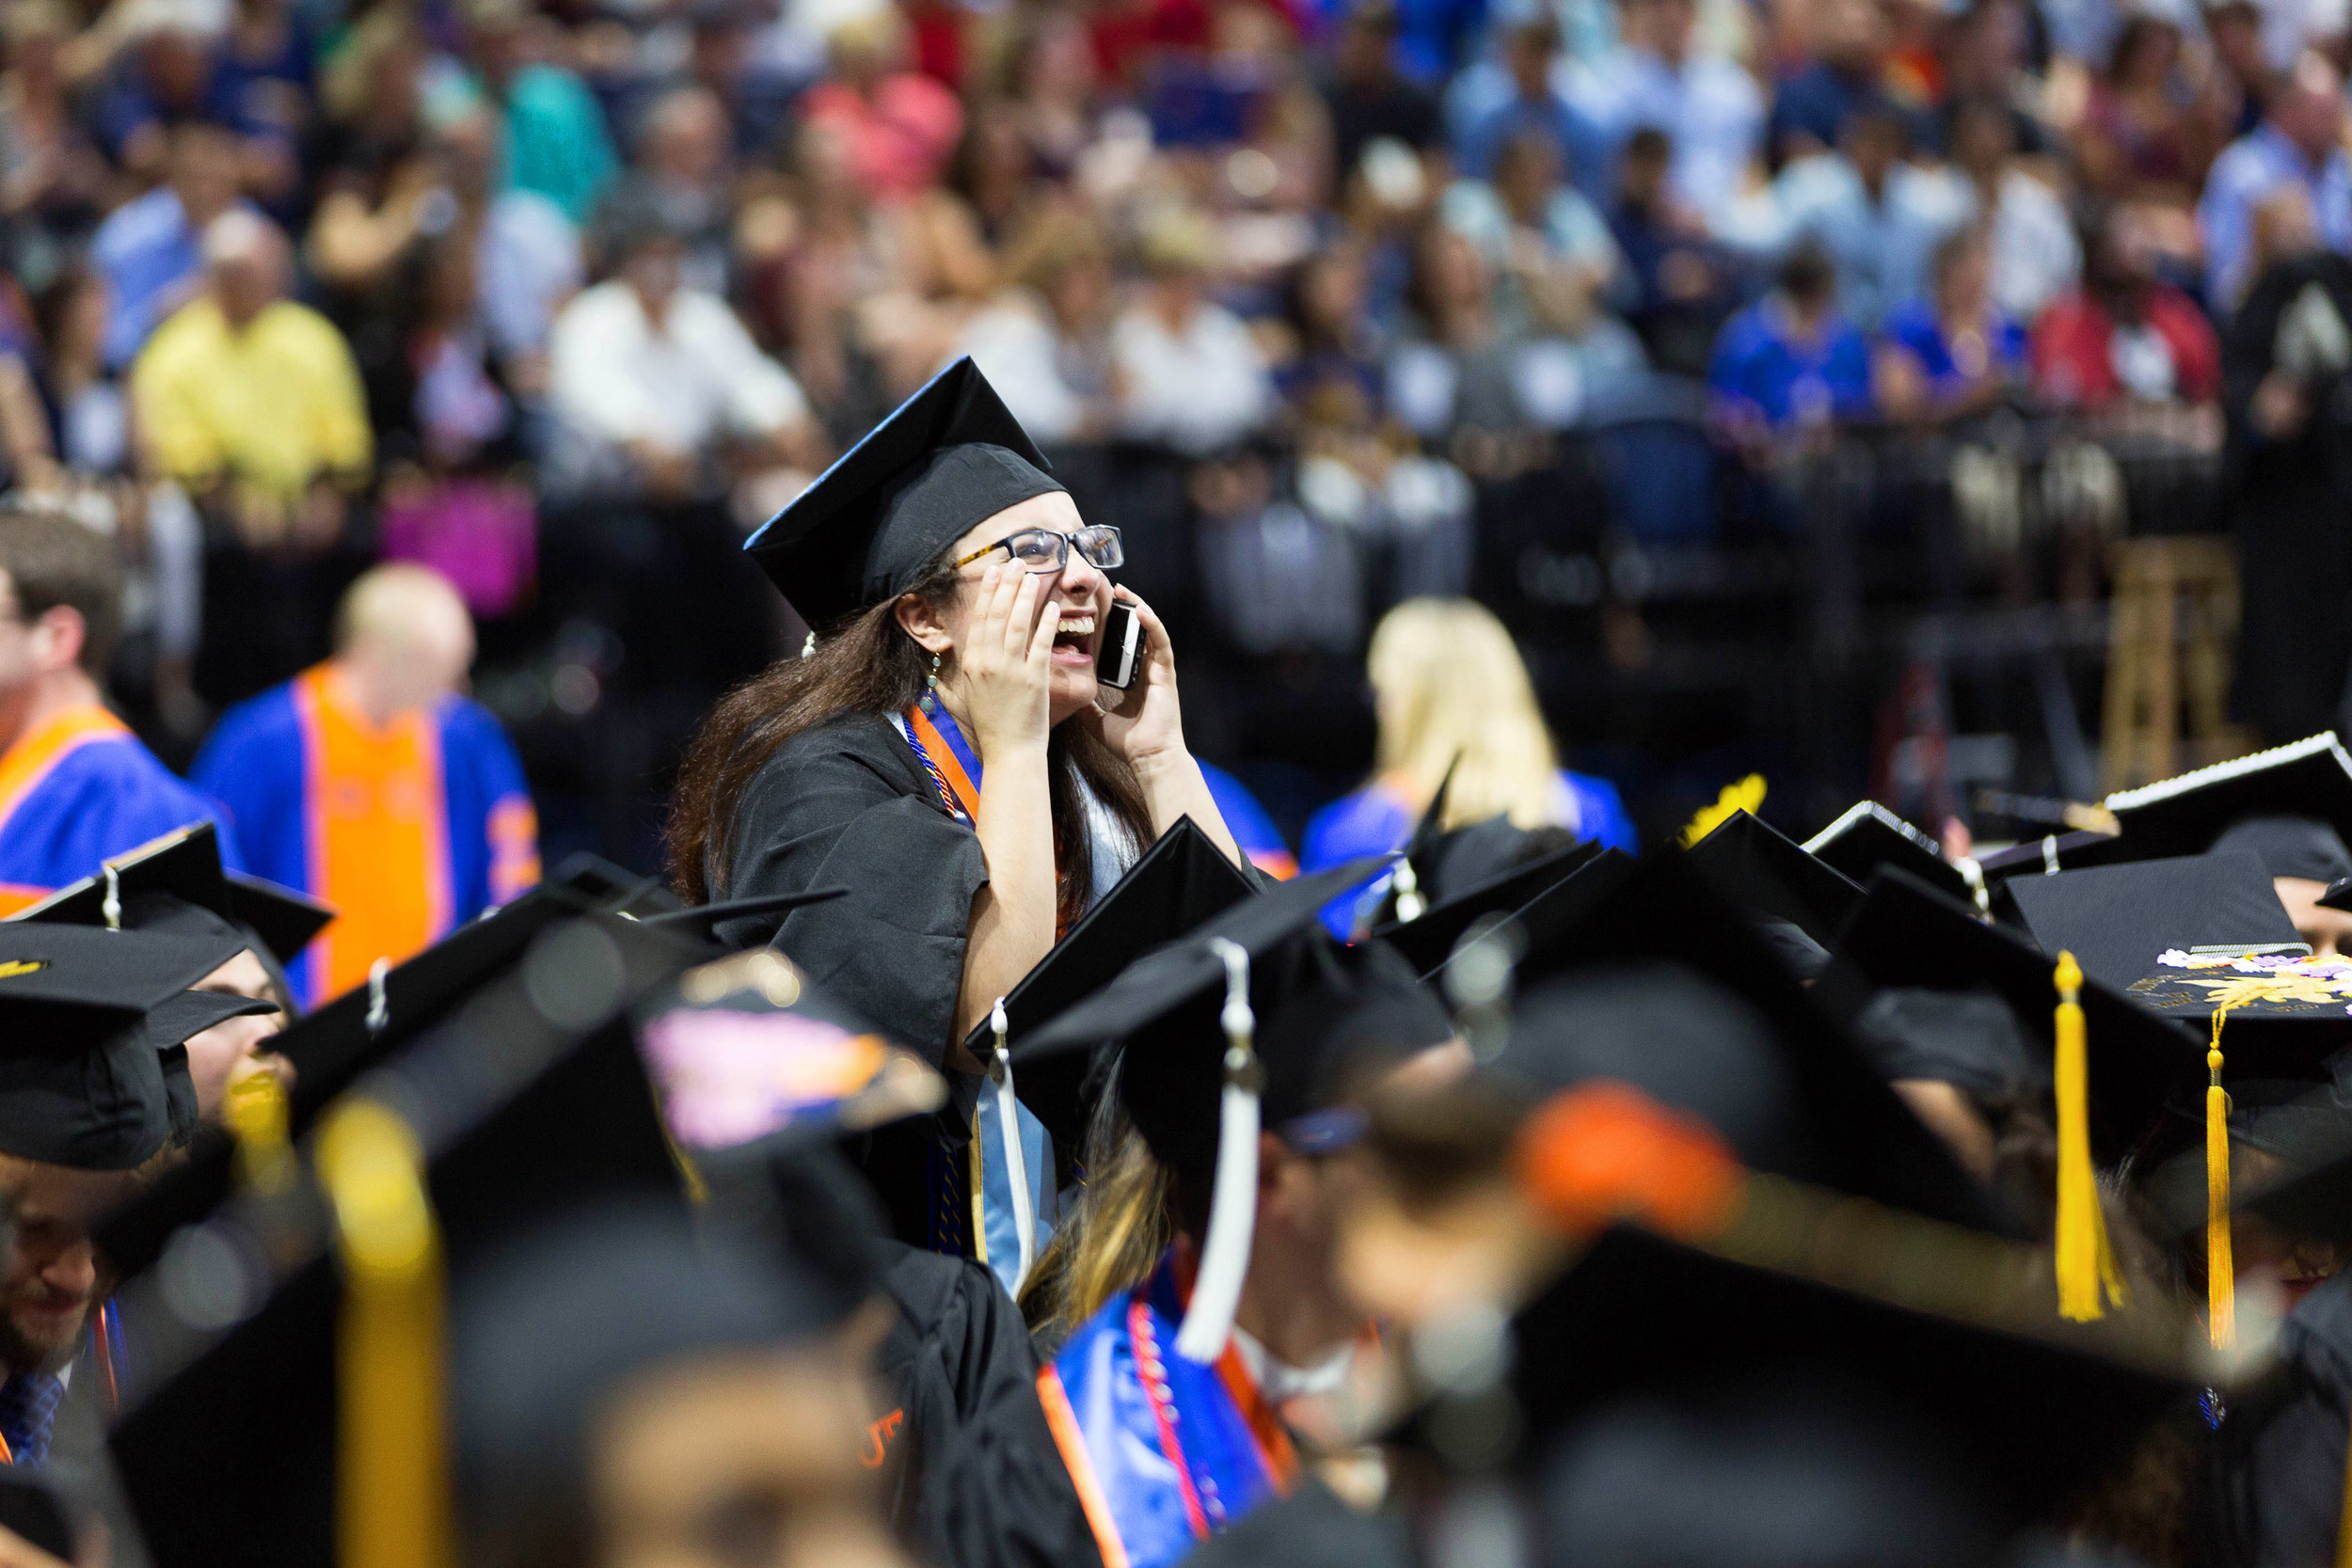 2018-05-05_UF_Commencement_PM-3676 copy.jpg